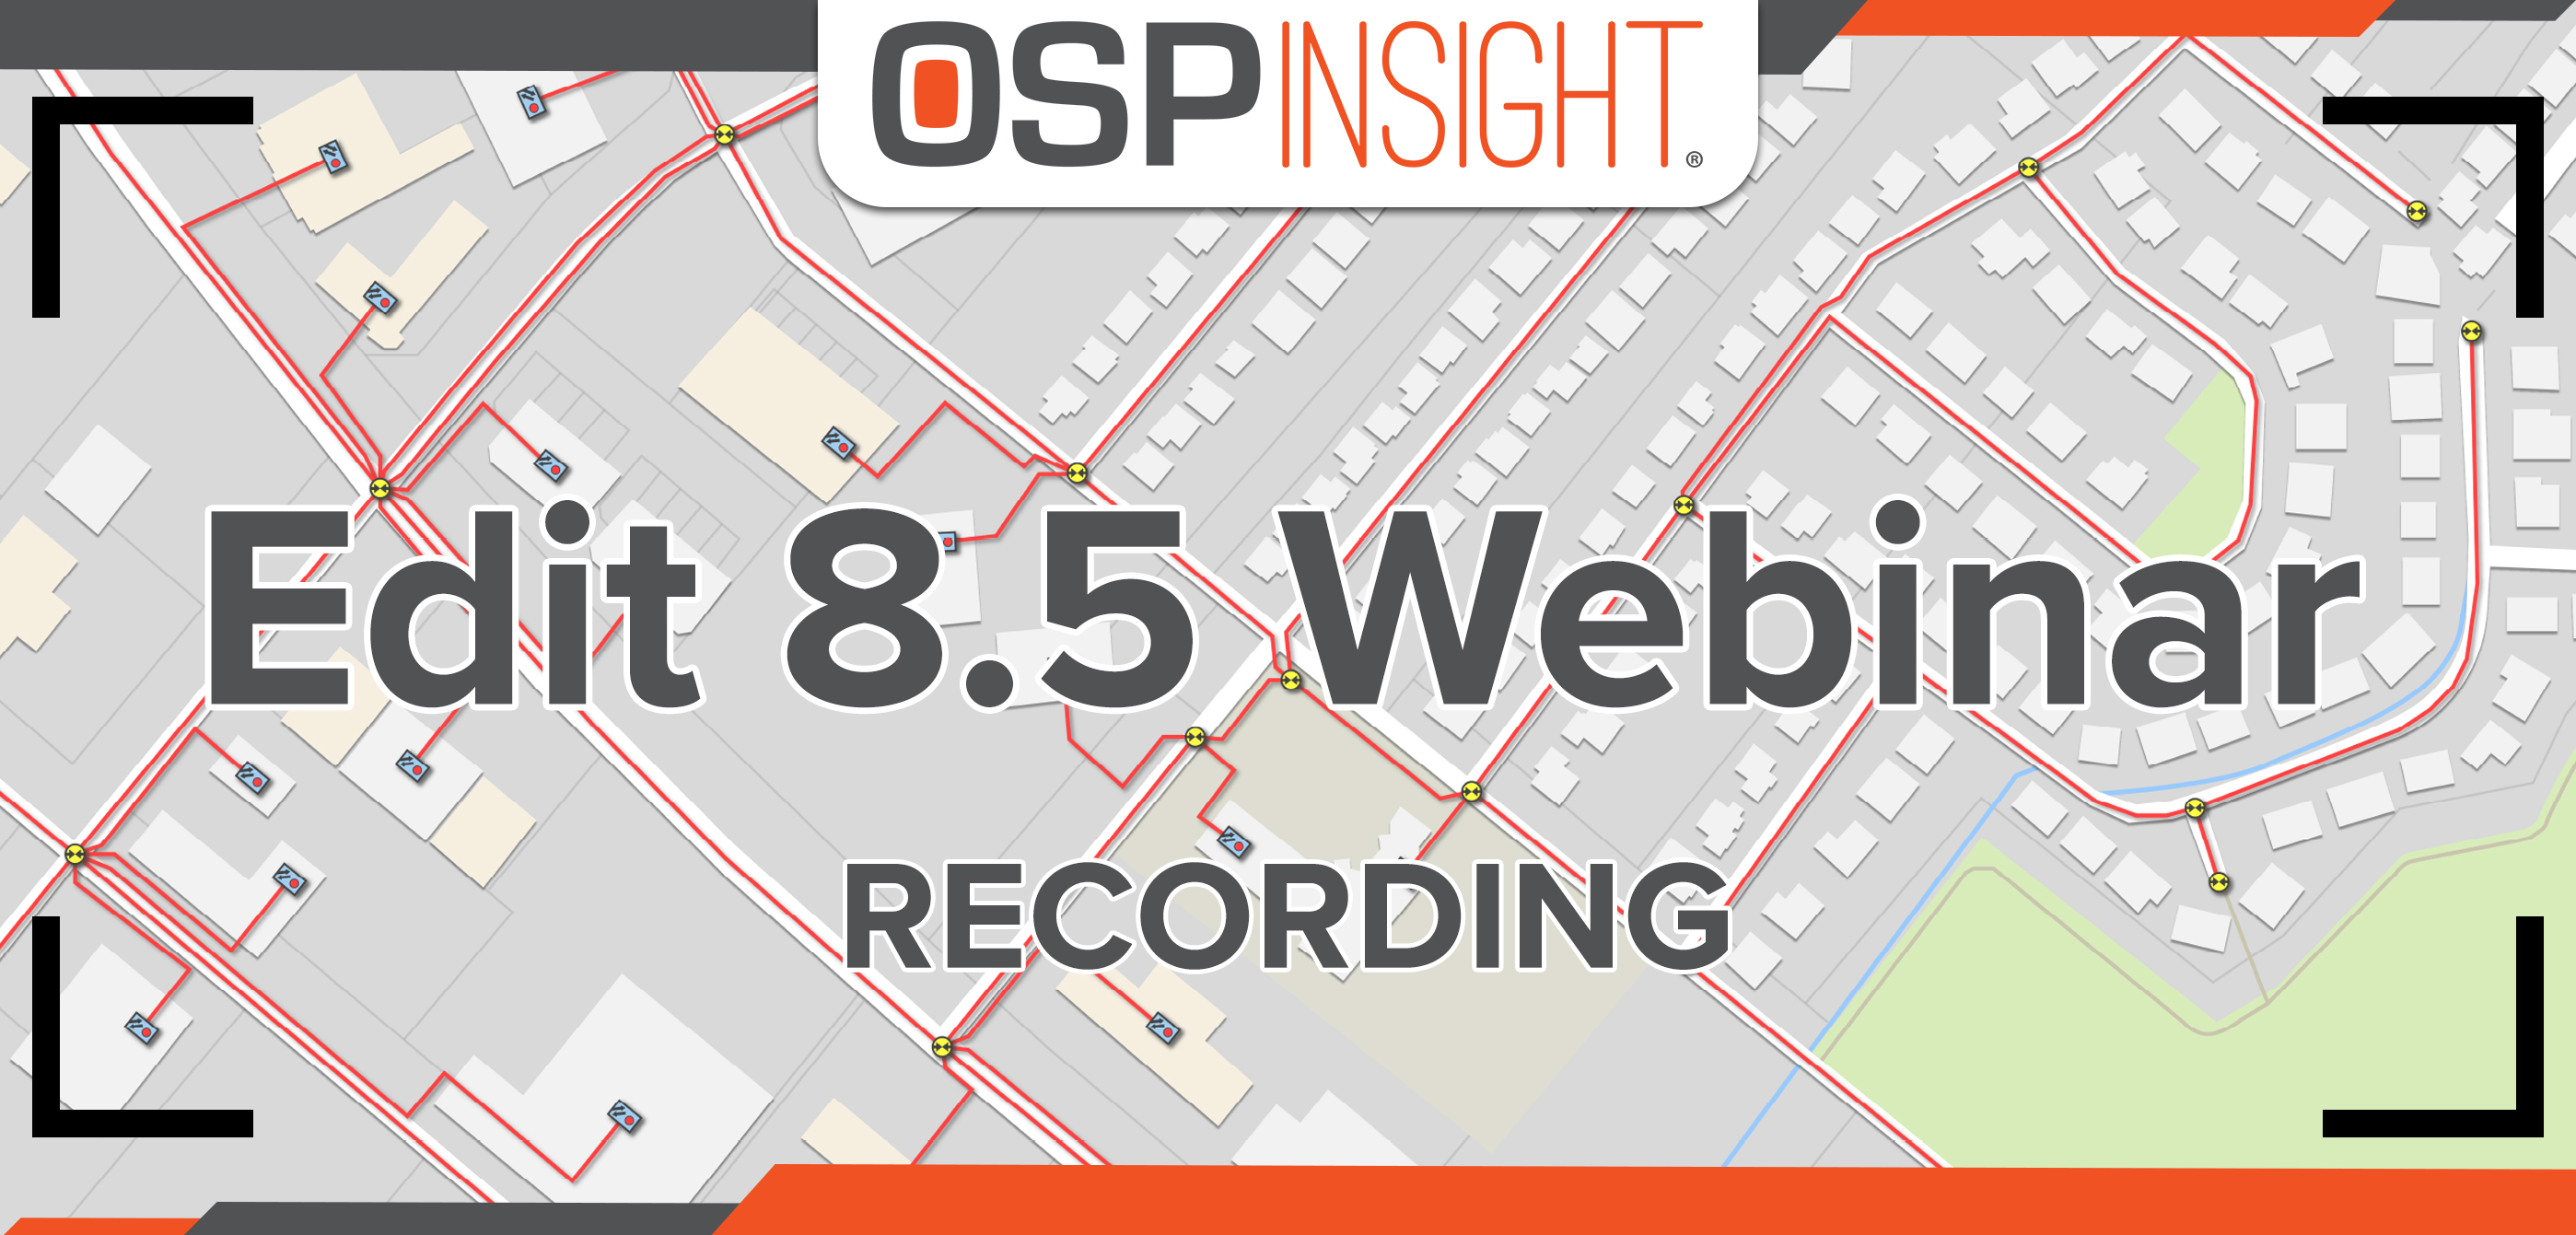 OSPInsight Edit 8.5 Webinar Recording (featured image)